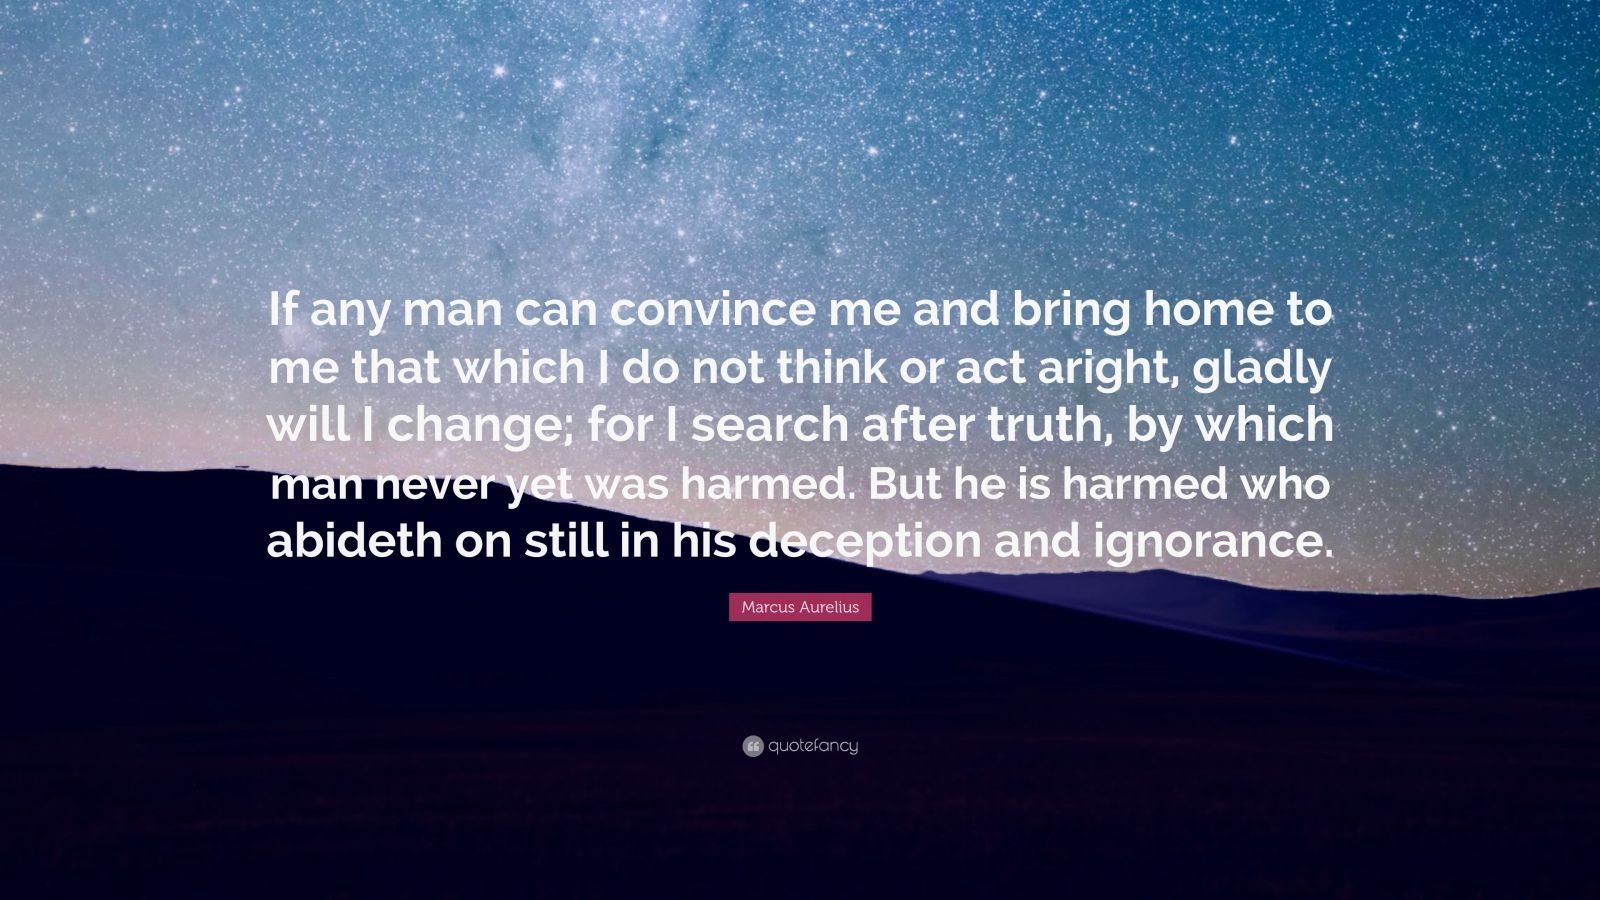 "Marcus Aurelius Quote: ""If any man can convince me and bring home to me that which I do not think or act aright, gladly will I change; for I search after truth, by which man never yet was harmed. But he is harmed who abideth on still in his deception and ignorance."""